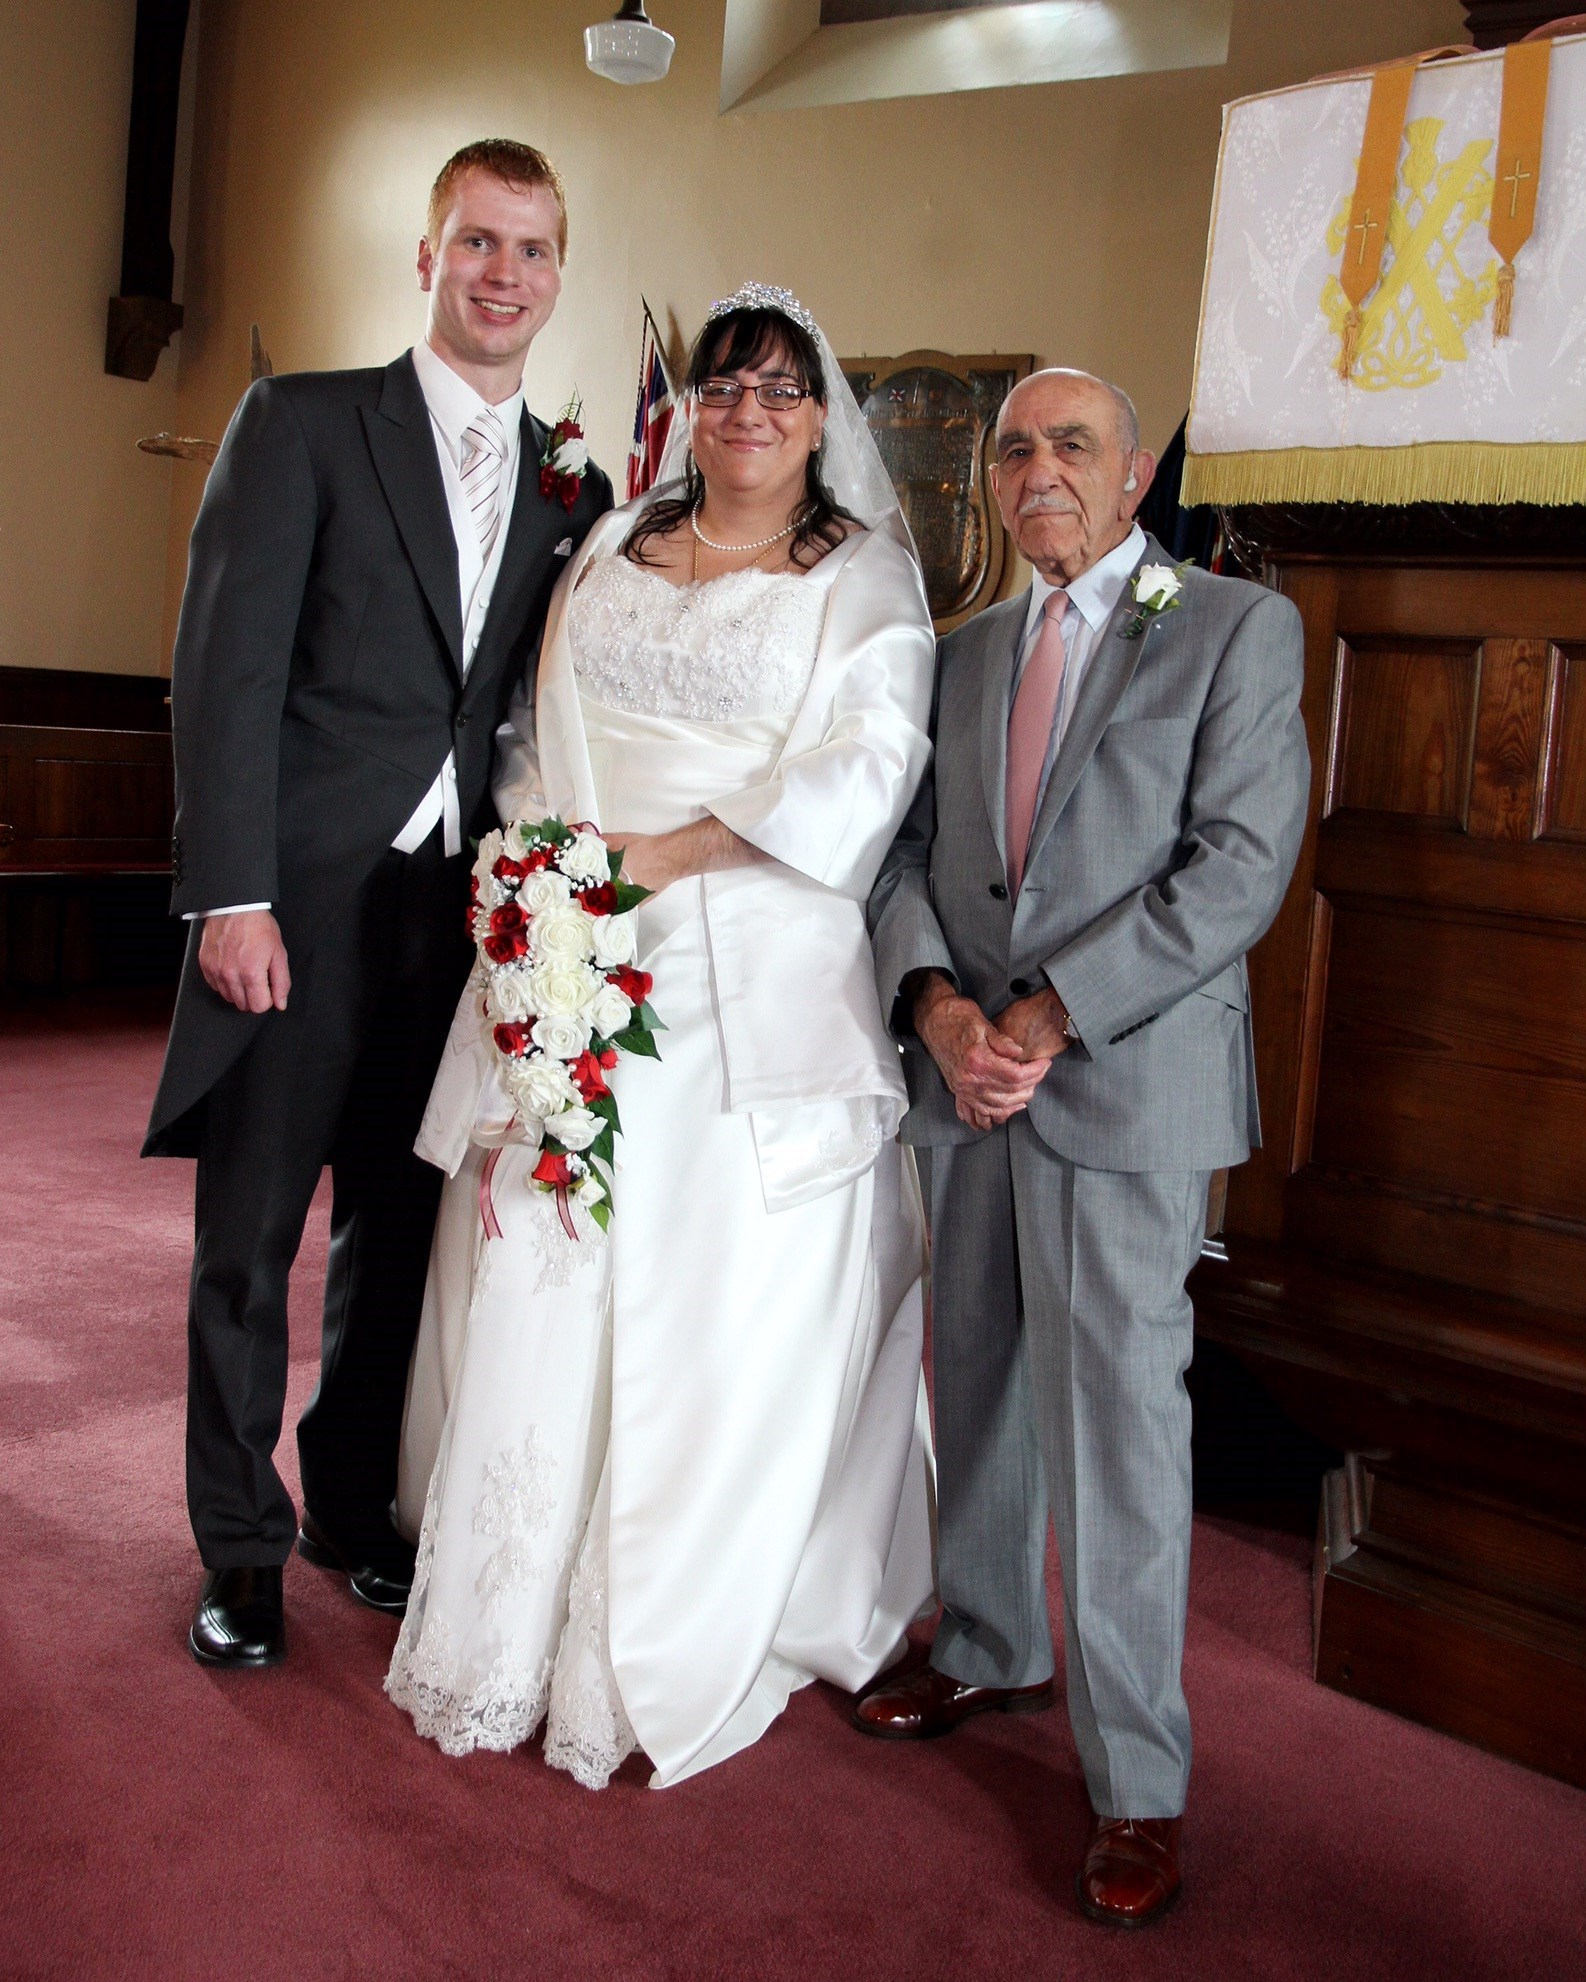 I was so proud of my grandad standing next to me in this pic on my wedding day